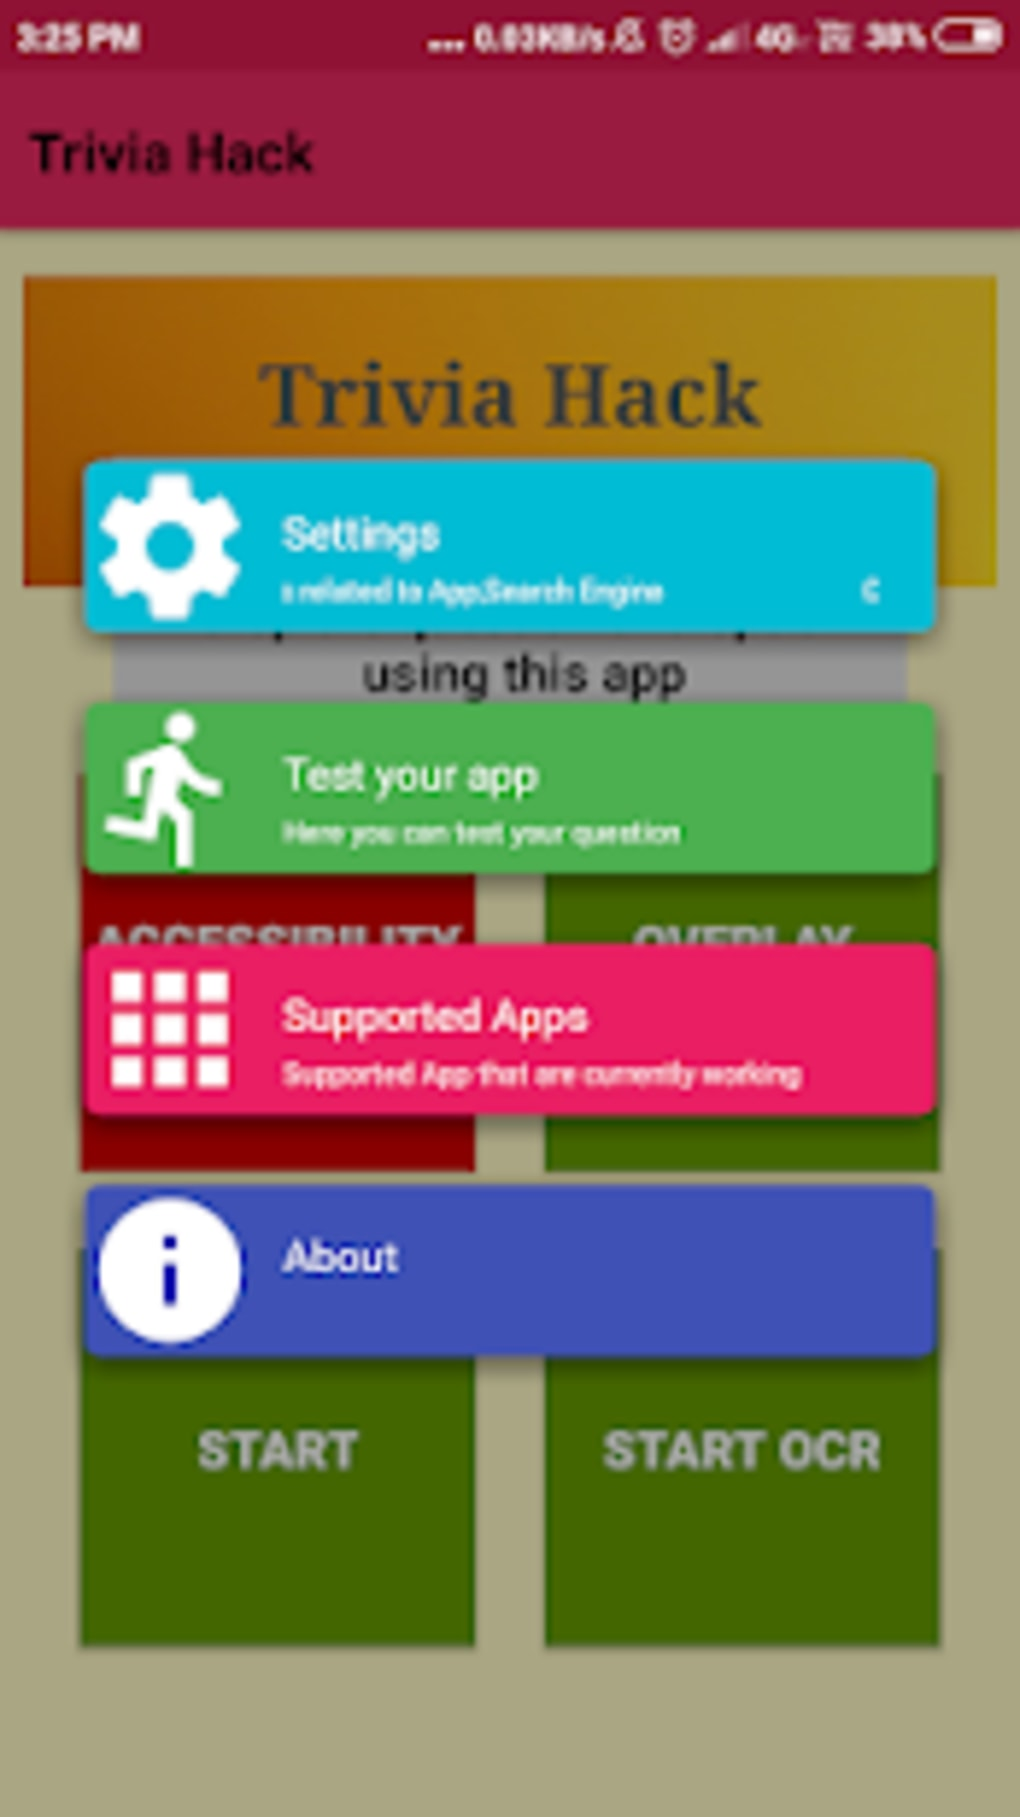 Trivia Help for Android - Download